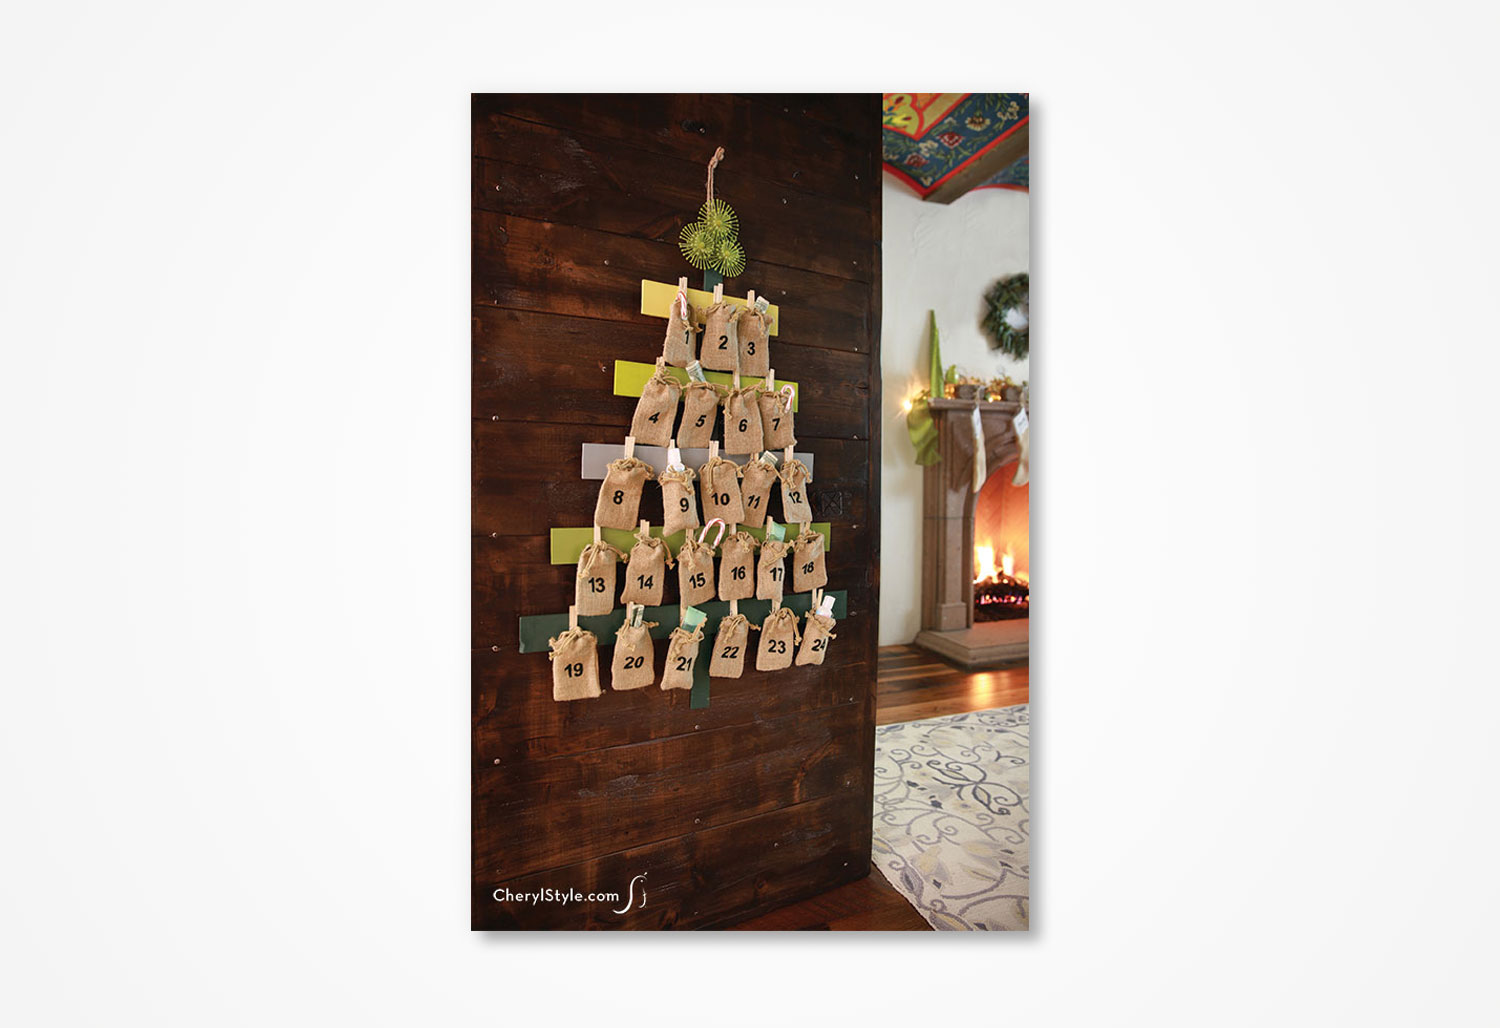 cs-burlap-bag-advent-tree.jpg